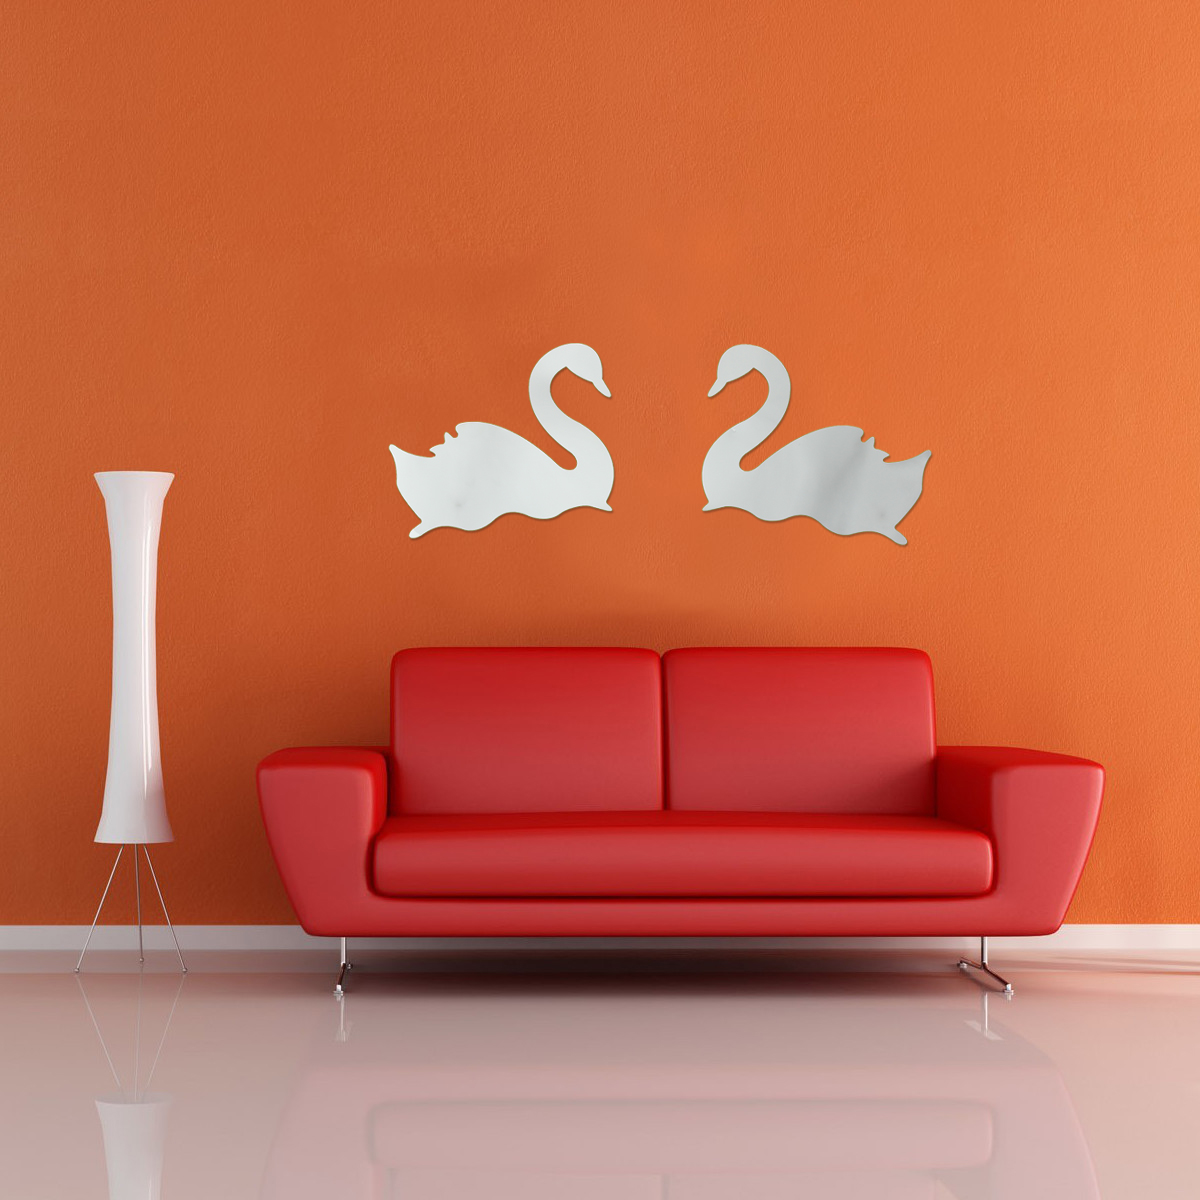 Diy 2 swans in love birds mirror acrylic wall sticker home for Home decor 2 love